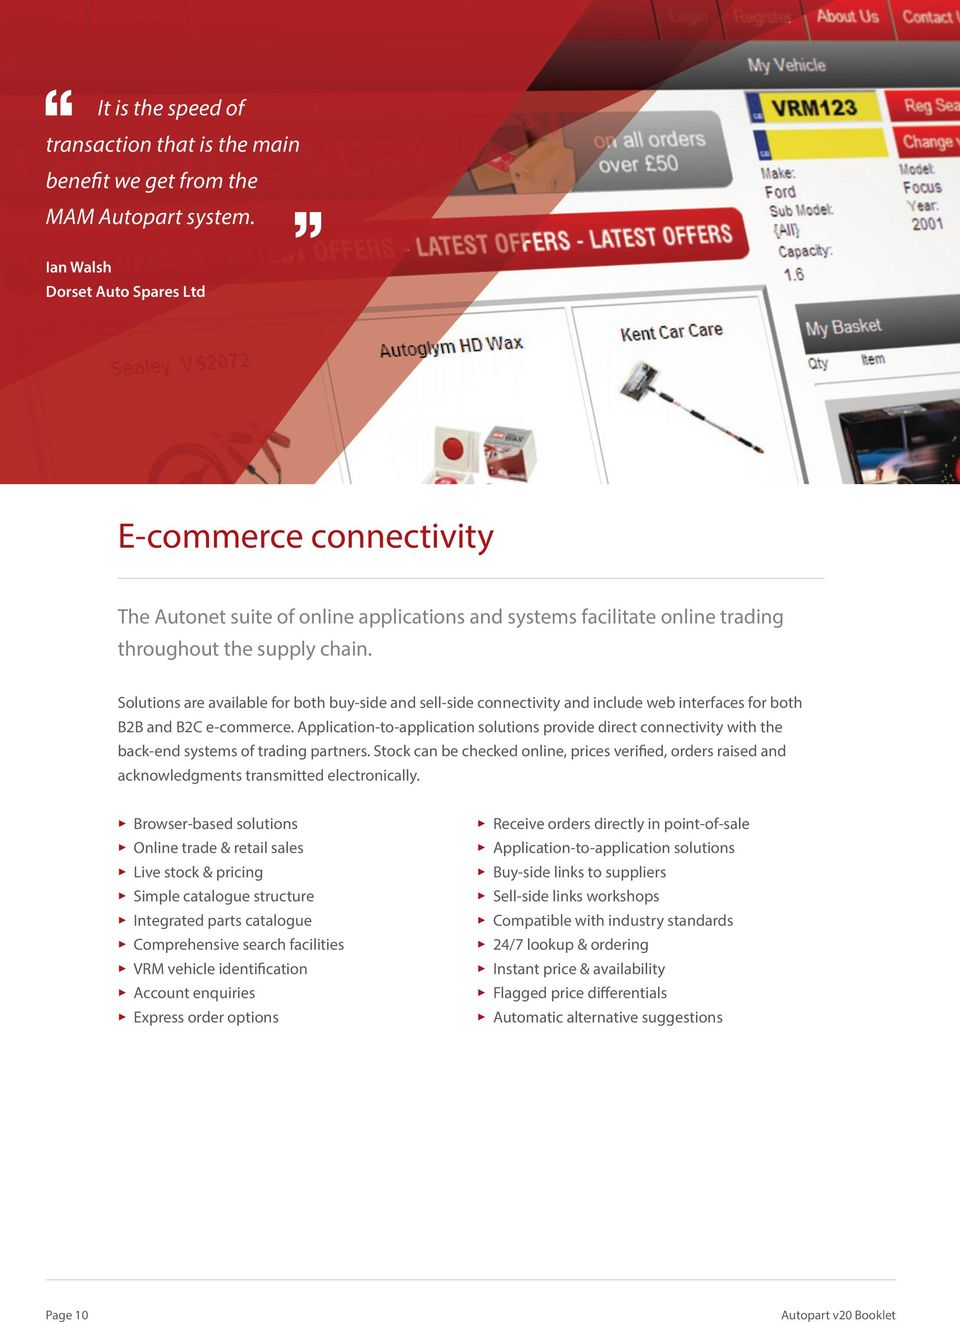 Solutions are available for both buy-side and sell-side connectivity and include web interfaces for both B2B and B2C e-commerce.